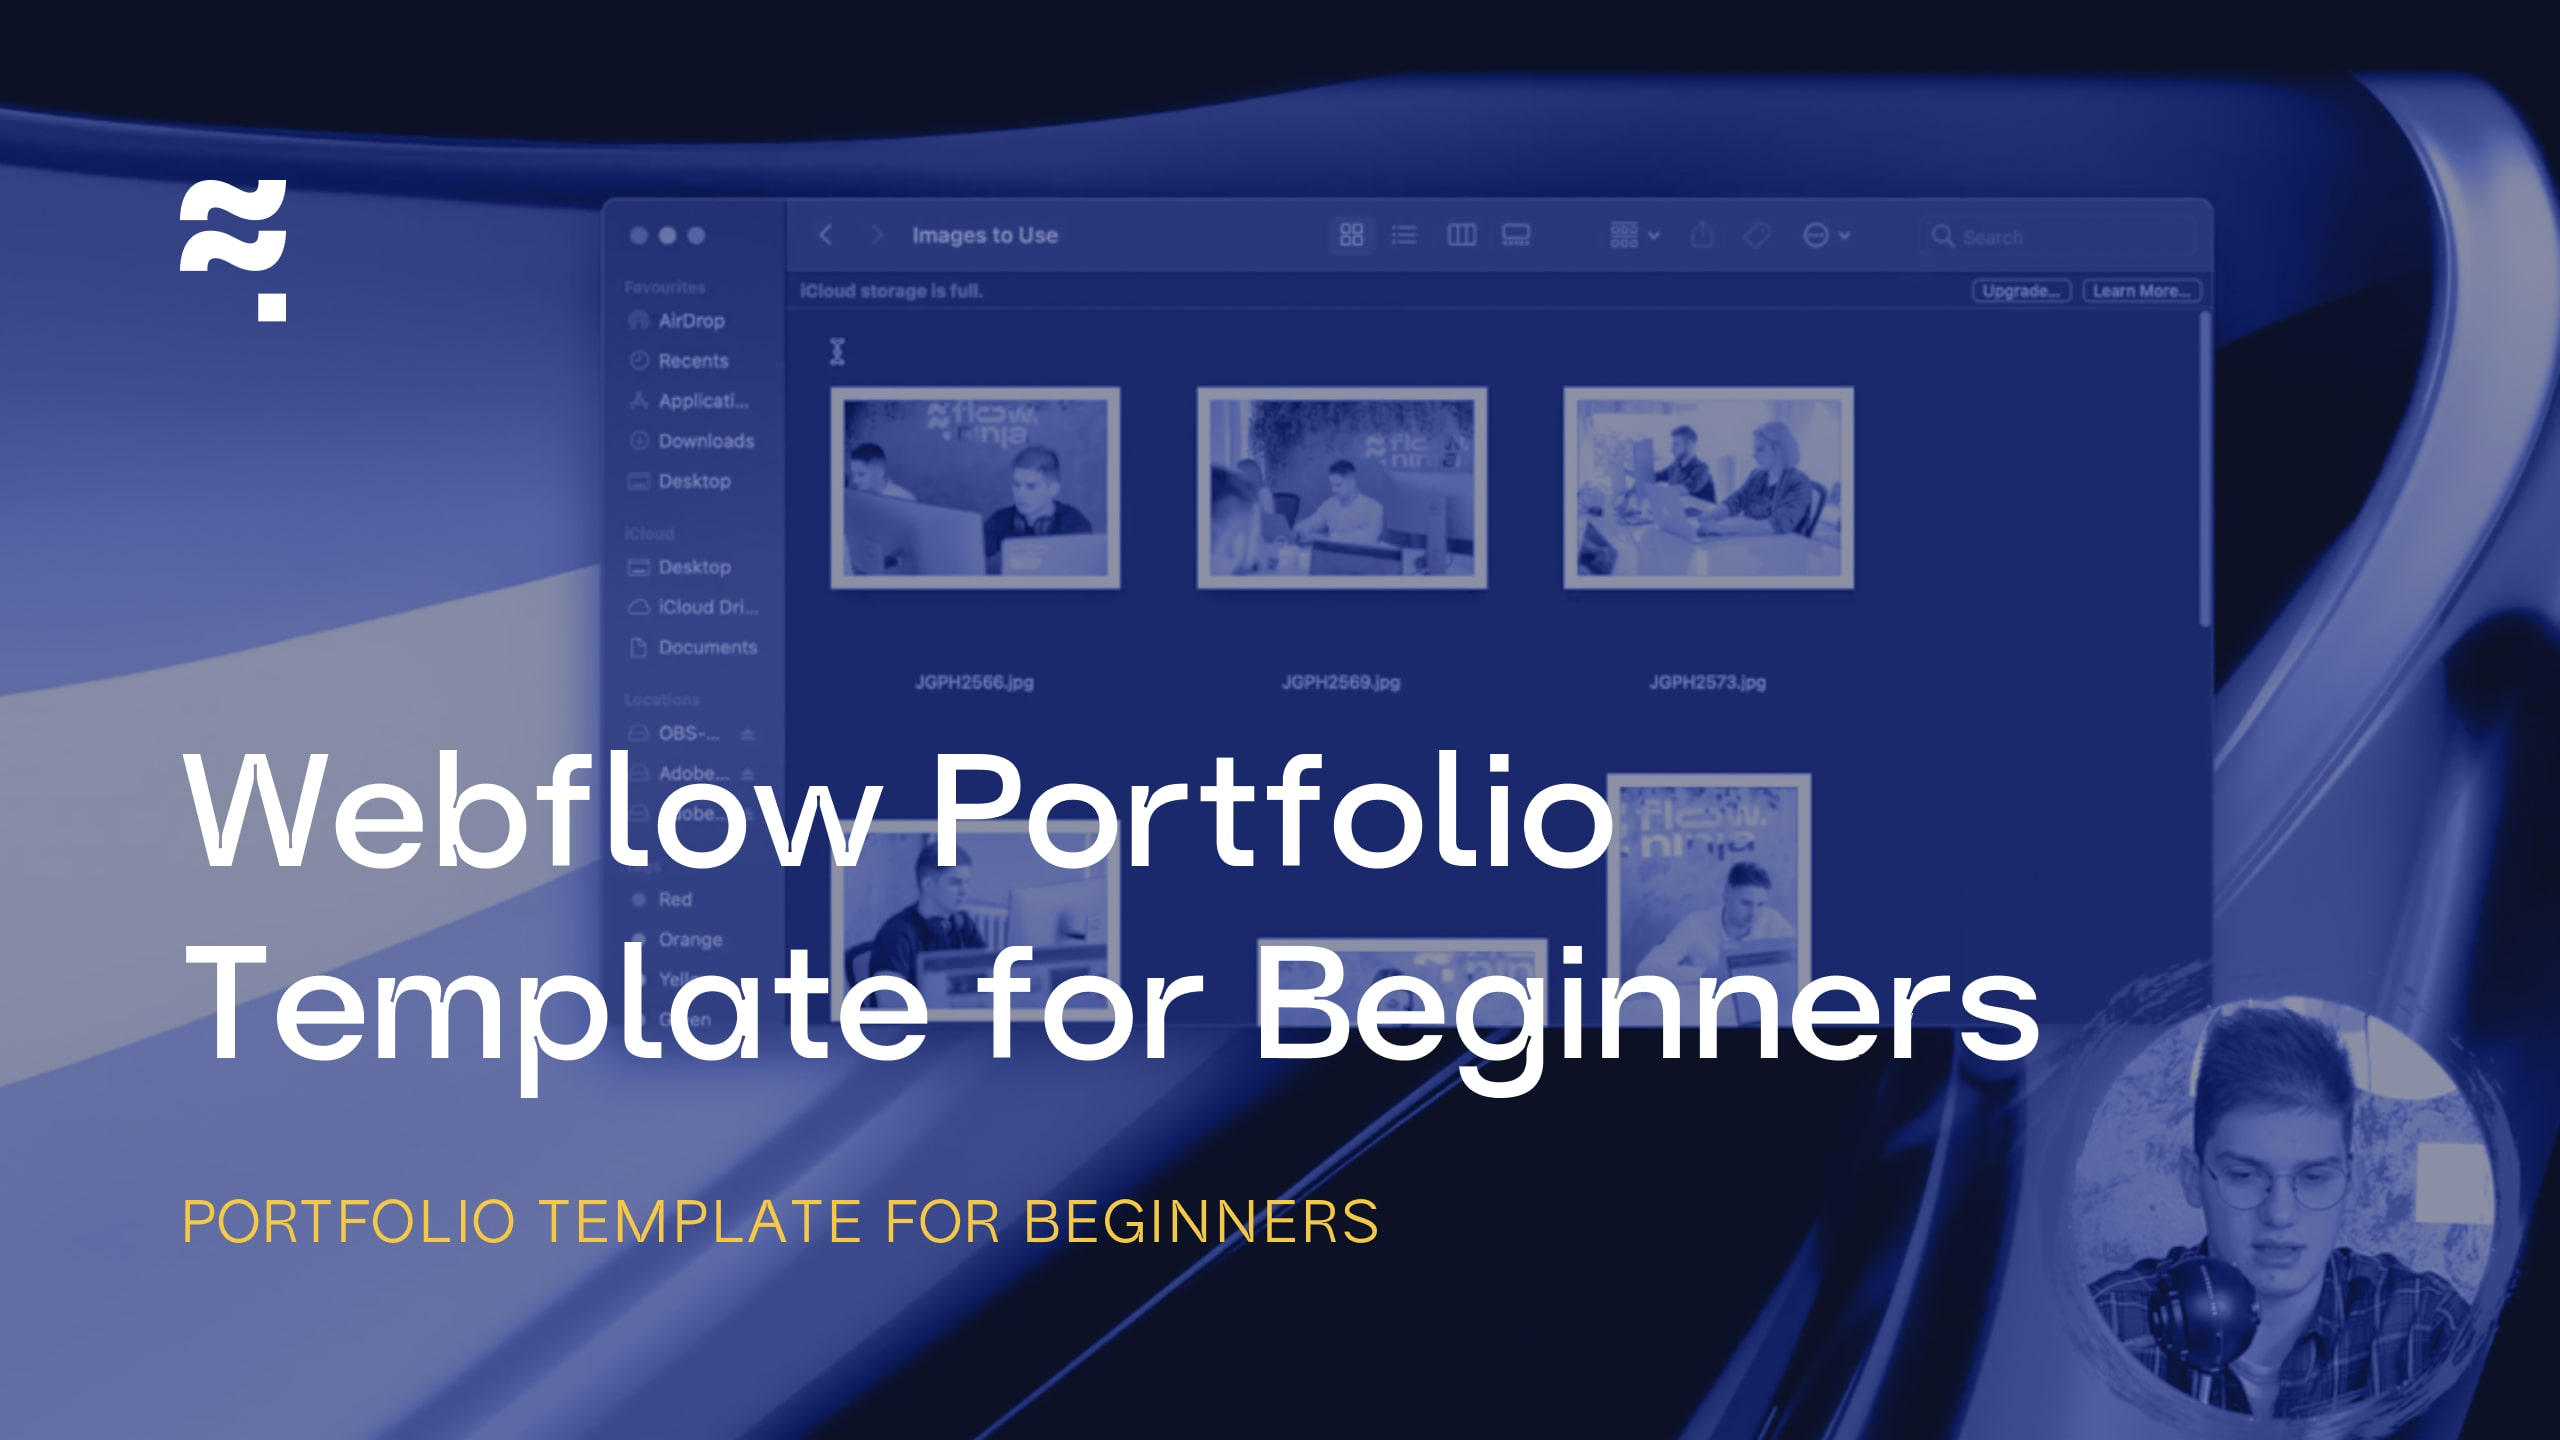 Webflow Portfolio Template for Beginners